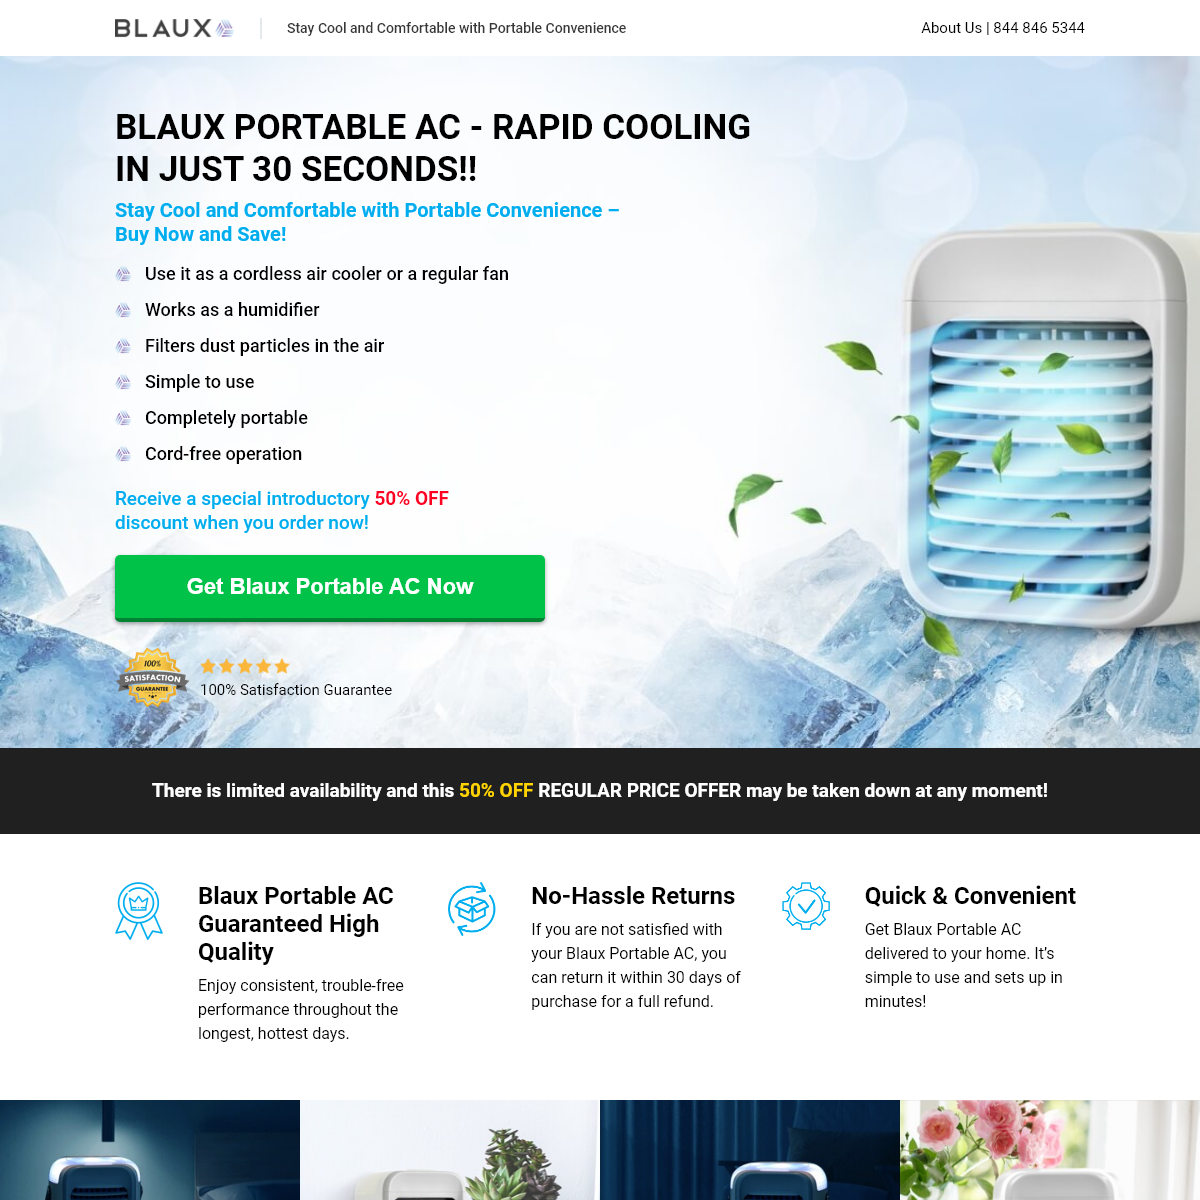 Blaux Portable AC - RAPID COOLING IN JUST 30 SECONDS PORTABLE AIR CONDITIONER